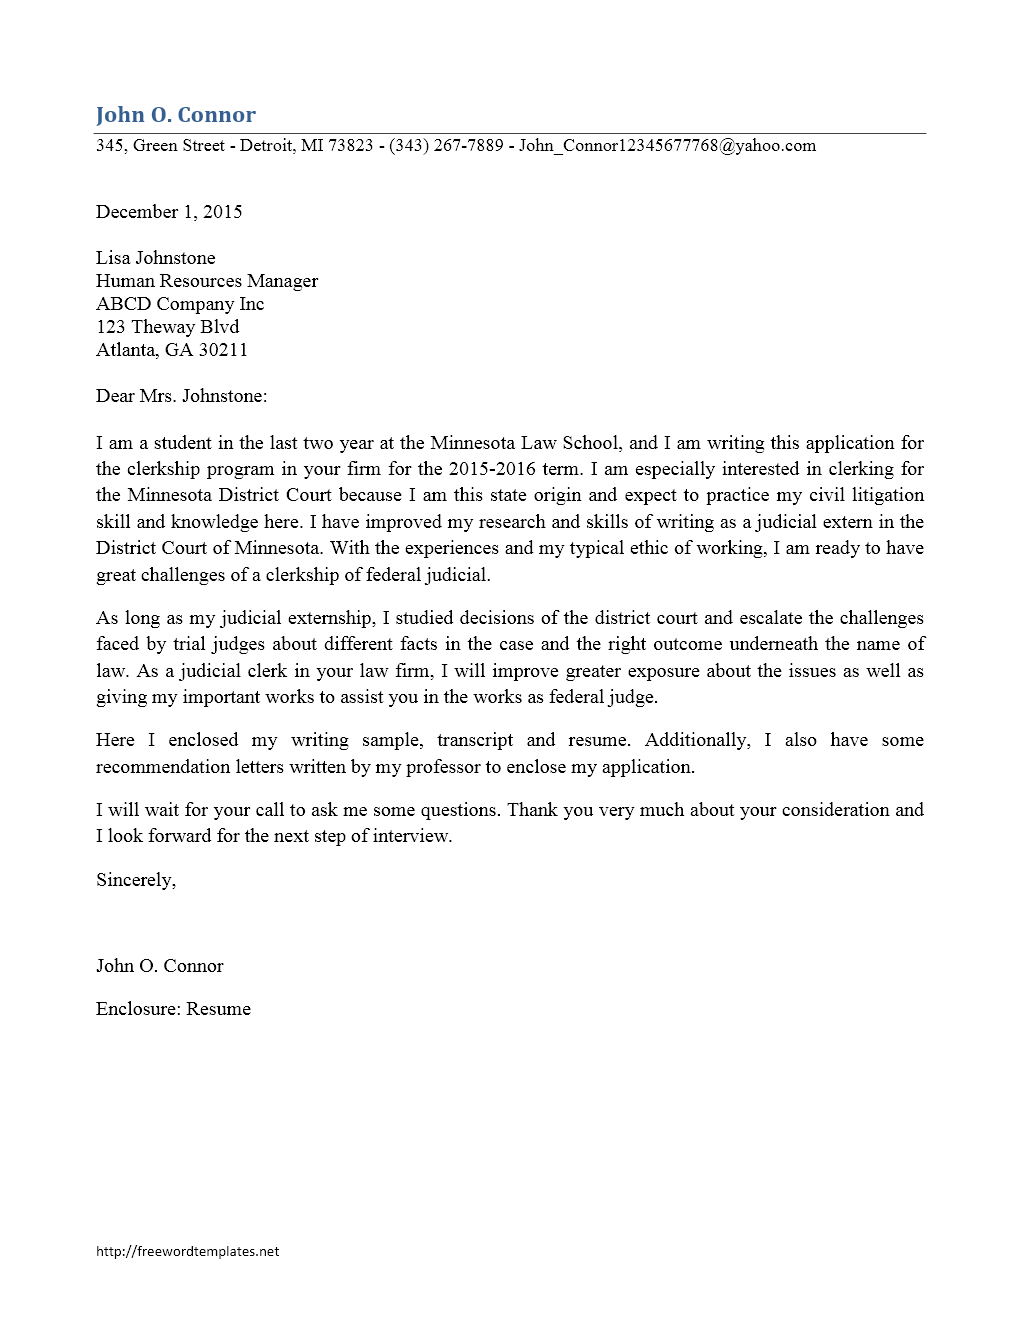 Cover Letter Template - Clerkship